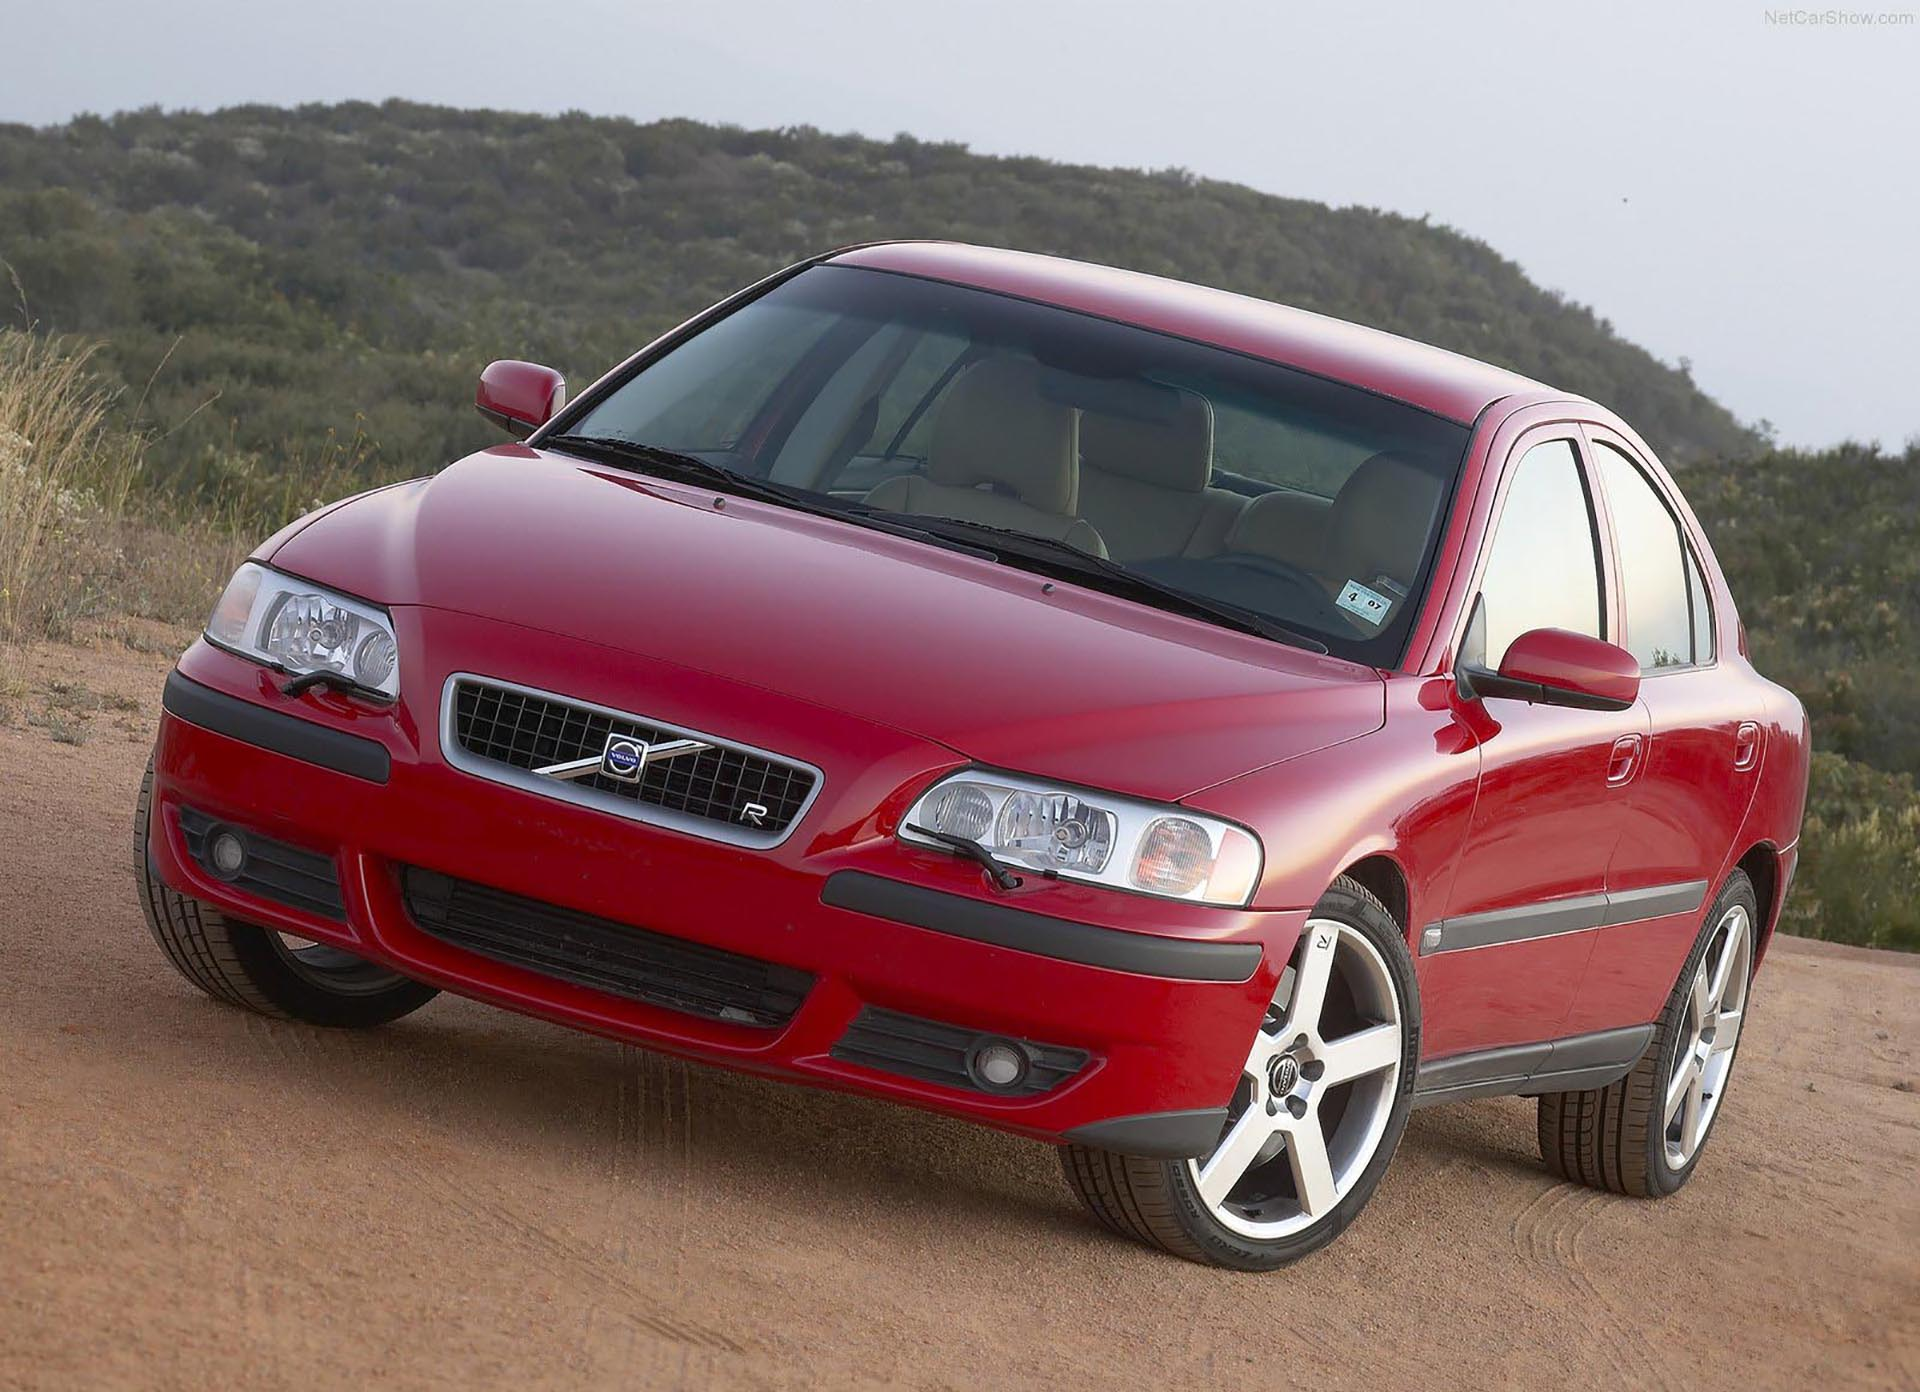 04_Volvo S60 R front